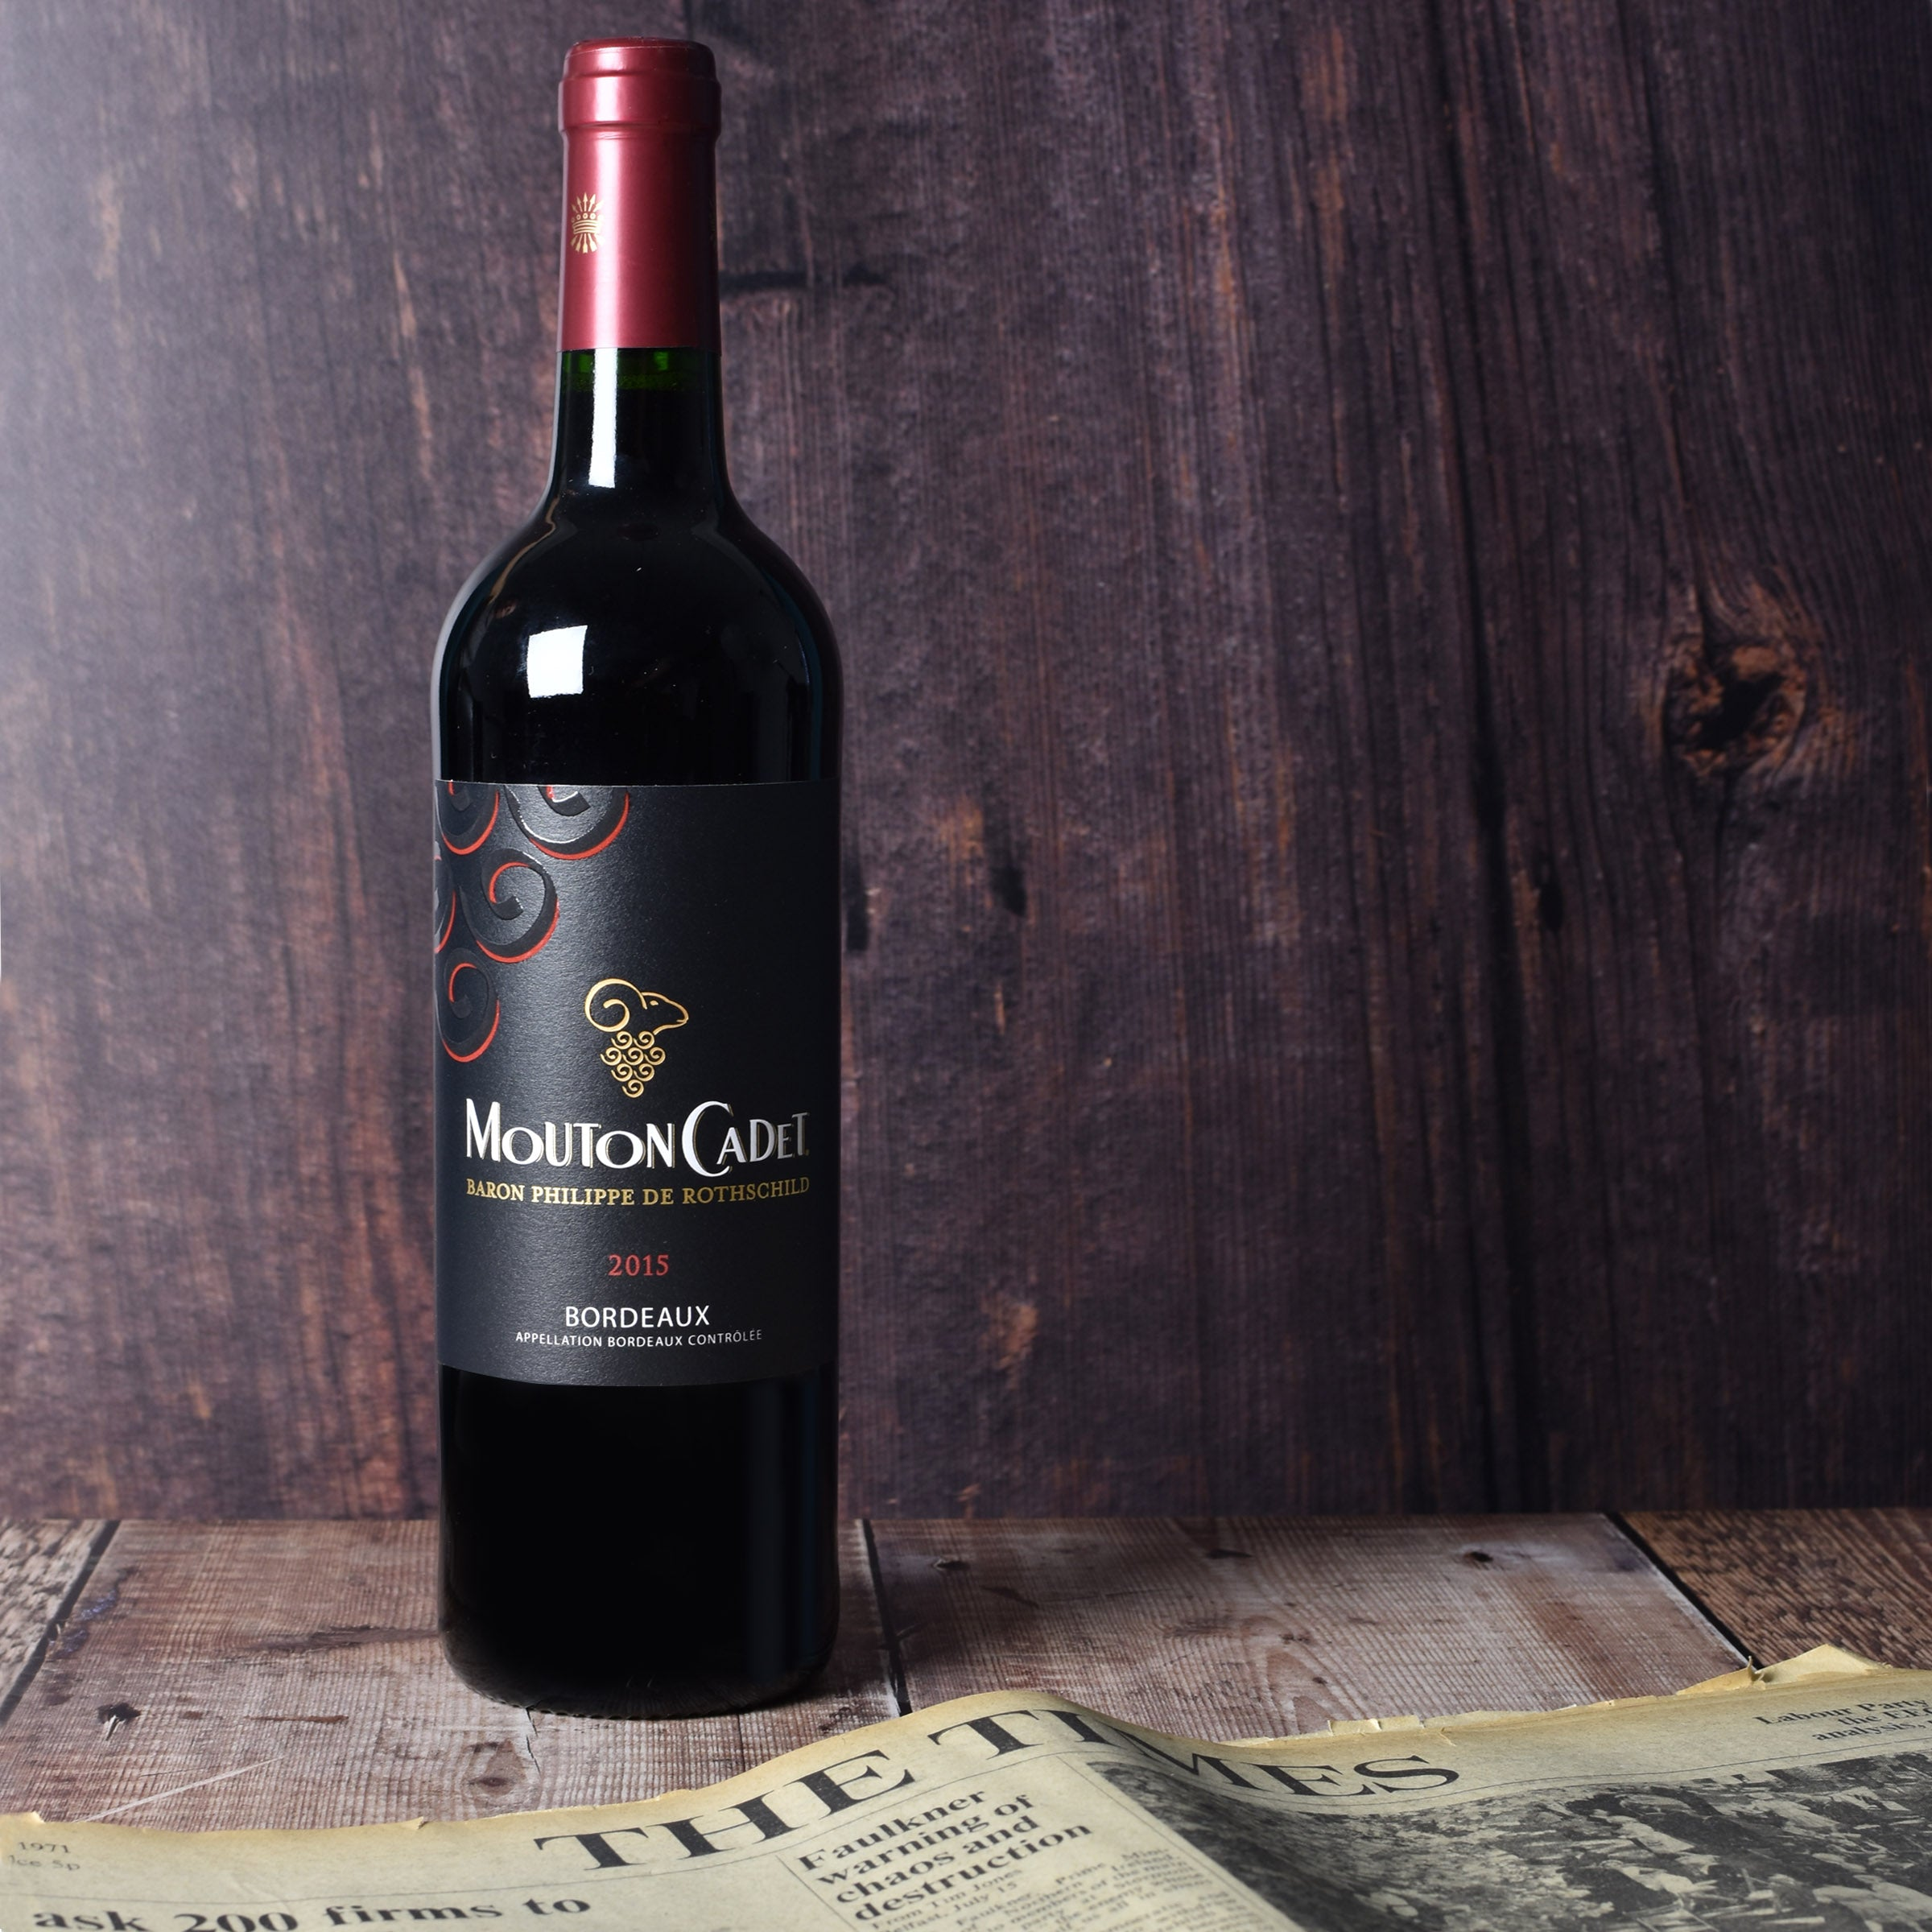 Mouton Cadet Vintage Bordeaux wine with Original Newspaper in giftbox